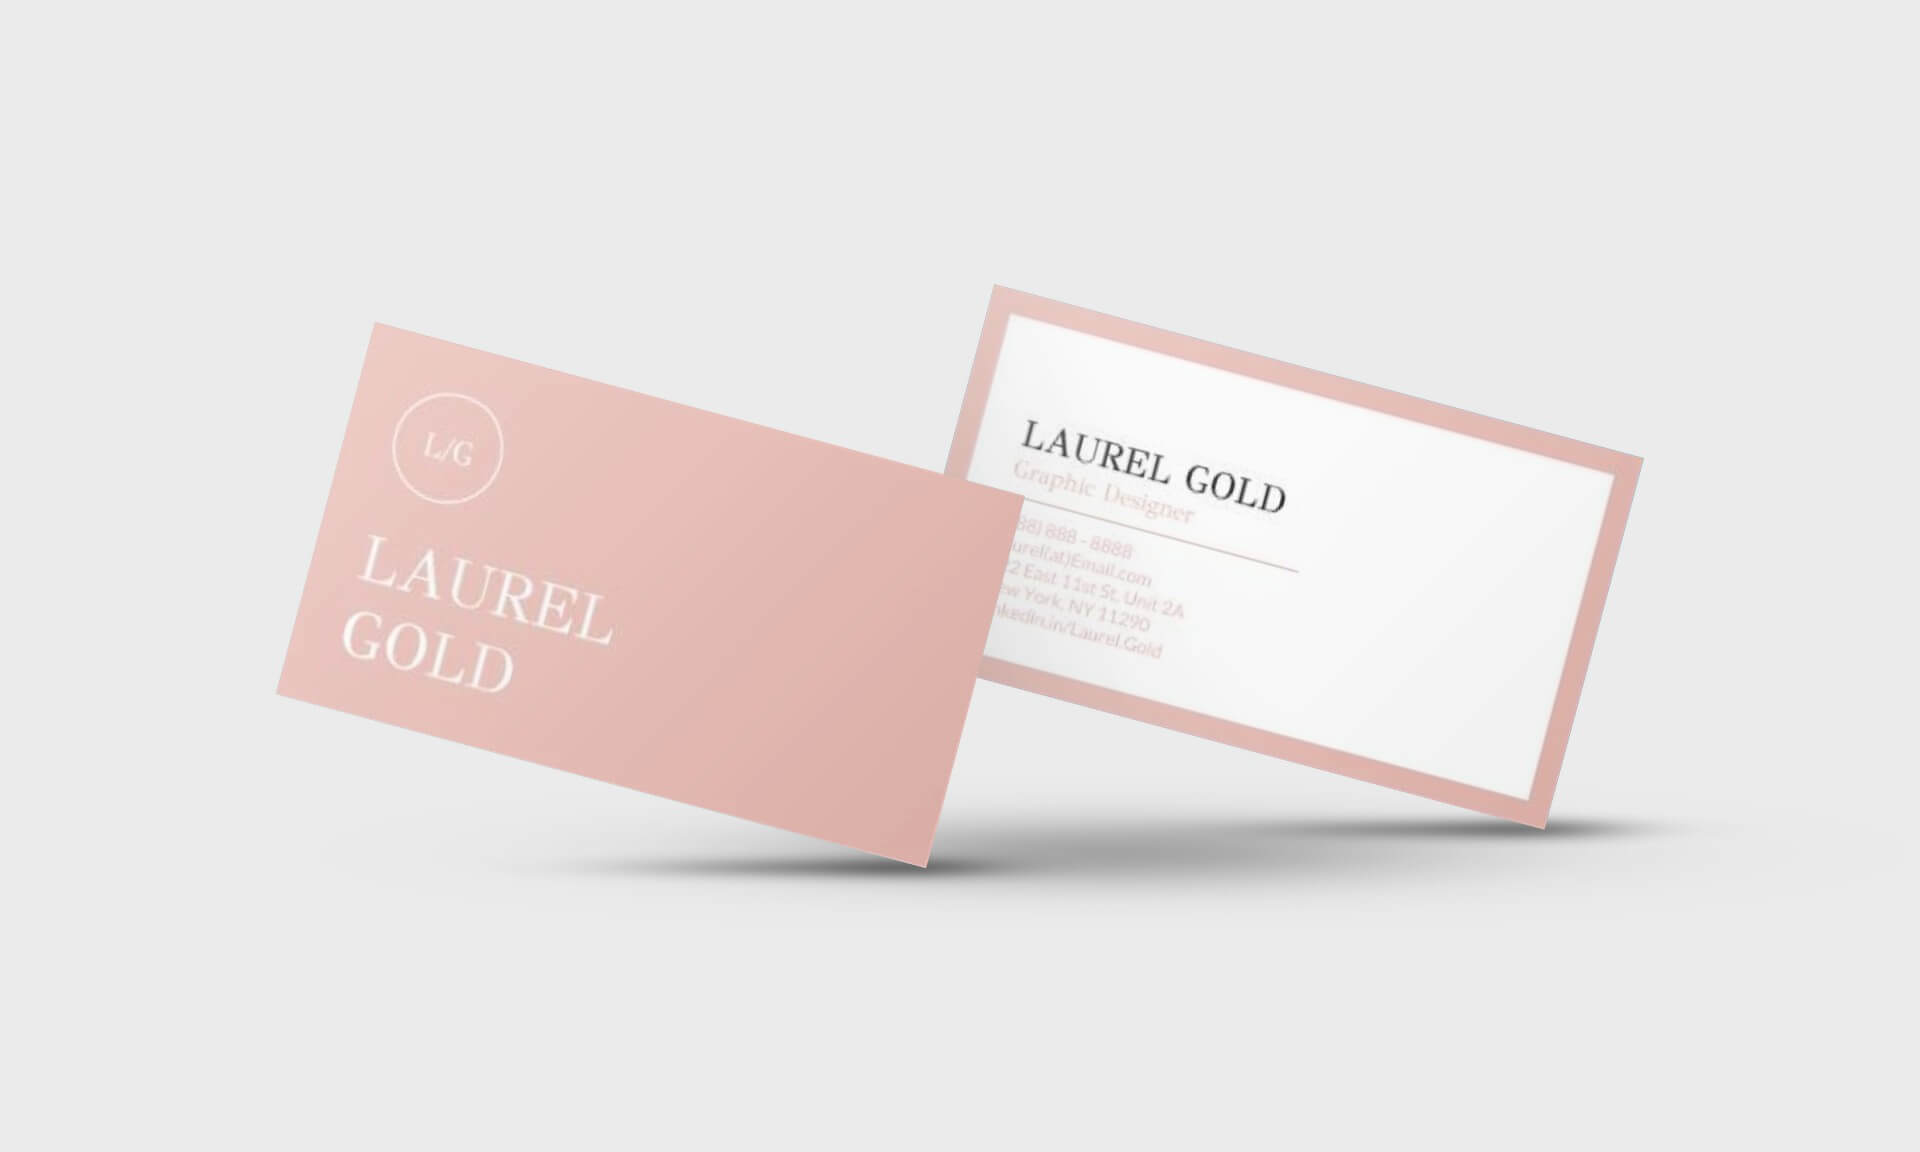 Laurel Gold Google Docs Business Card Template - Stand Out Shop Throughout Google Docs Business Card Template